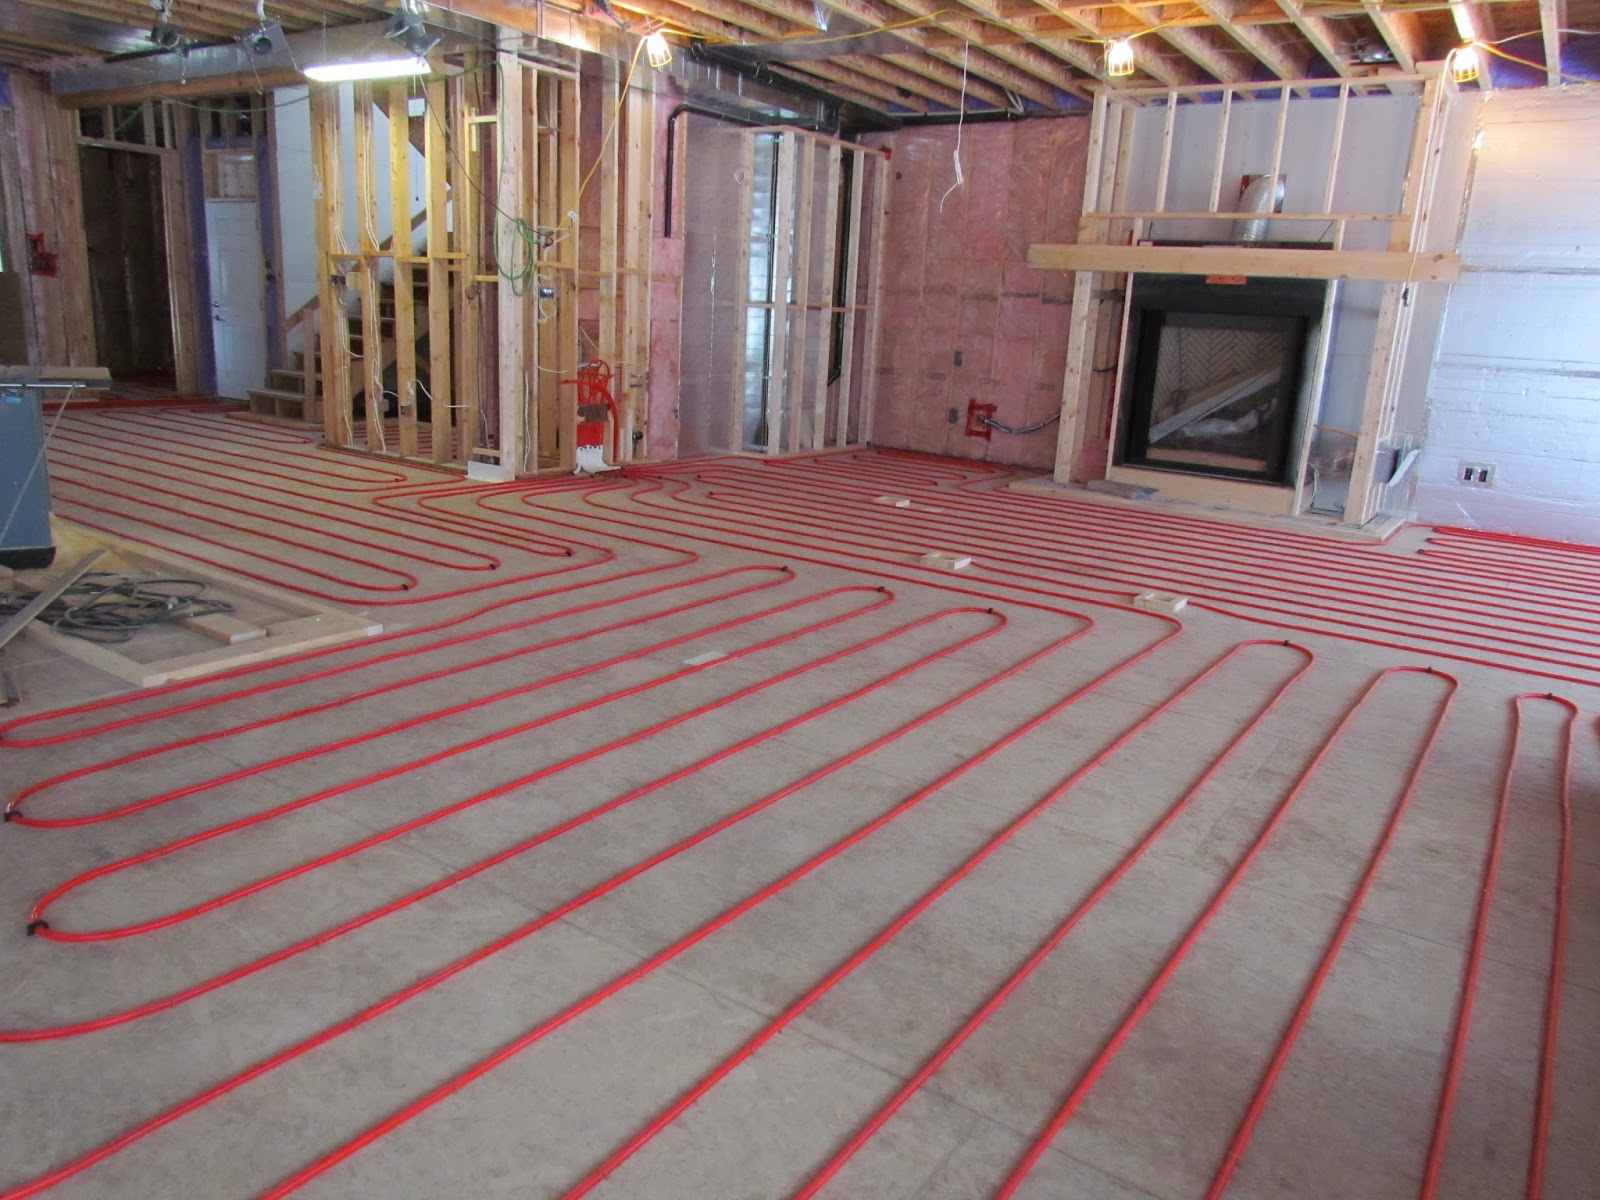 Superbe Radiant In Floor Heating In The Basement